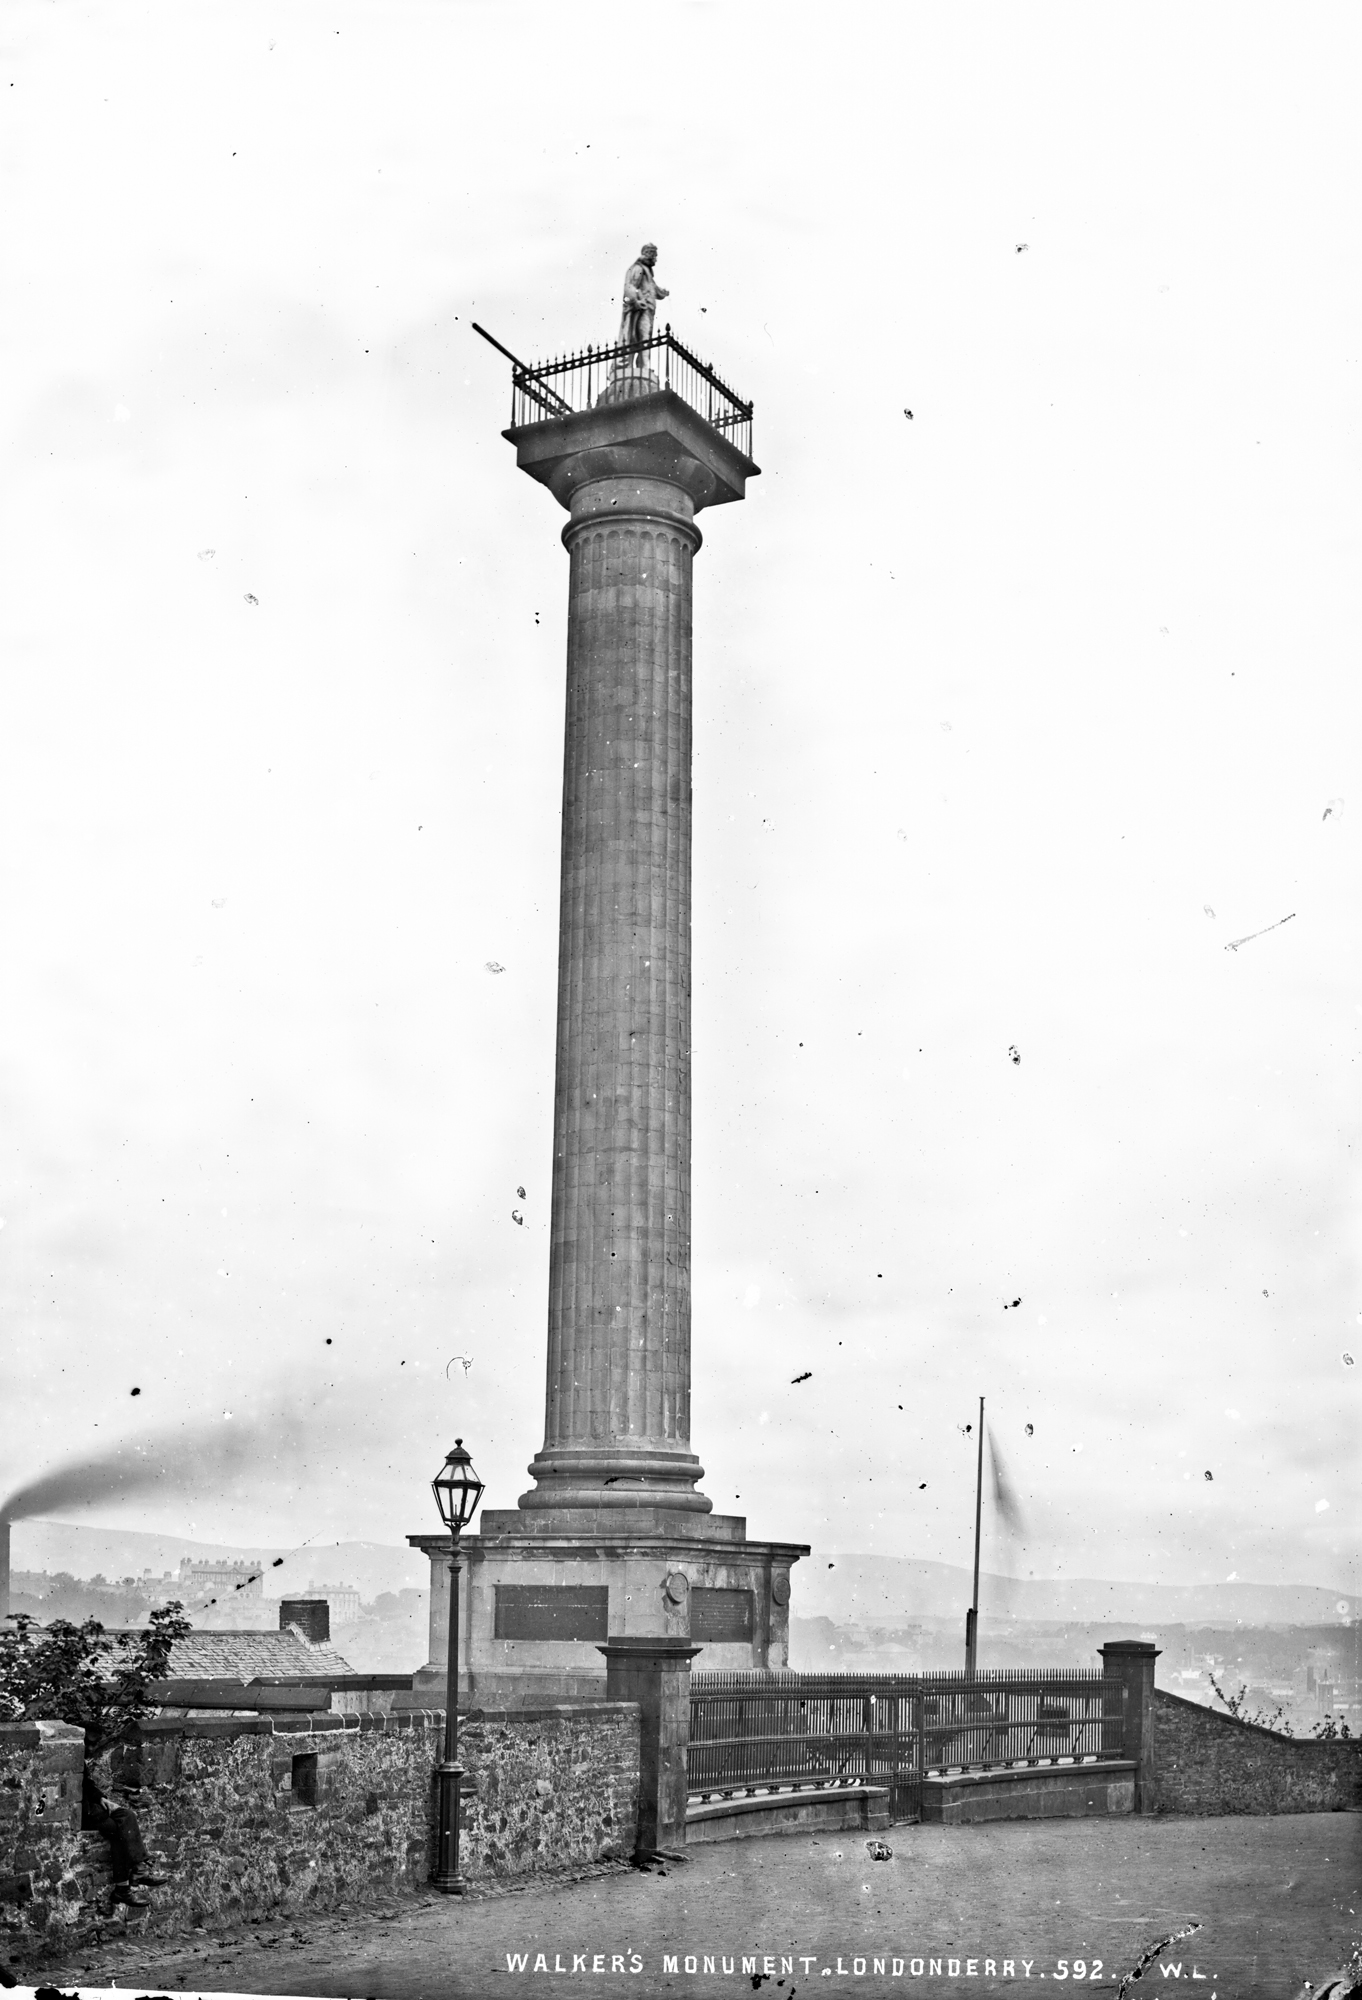 Walker's Monument, Derry City, Co. Derry